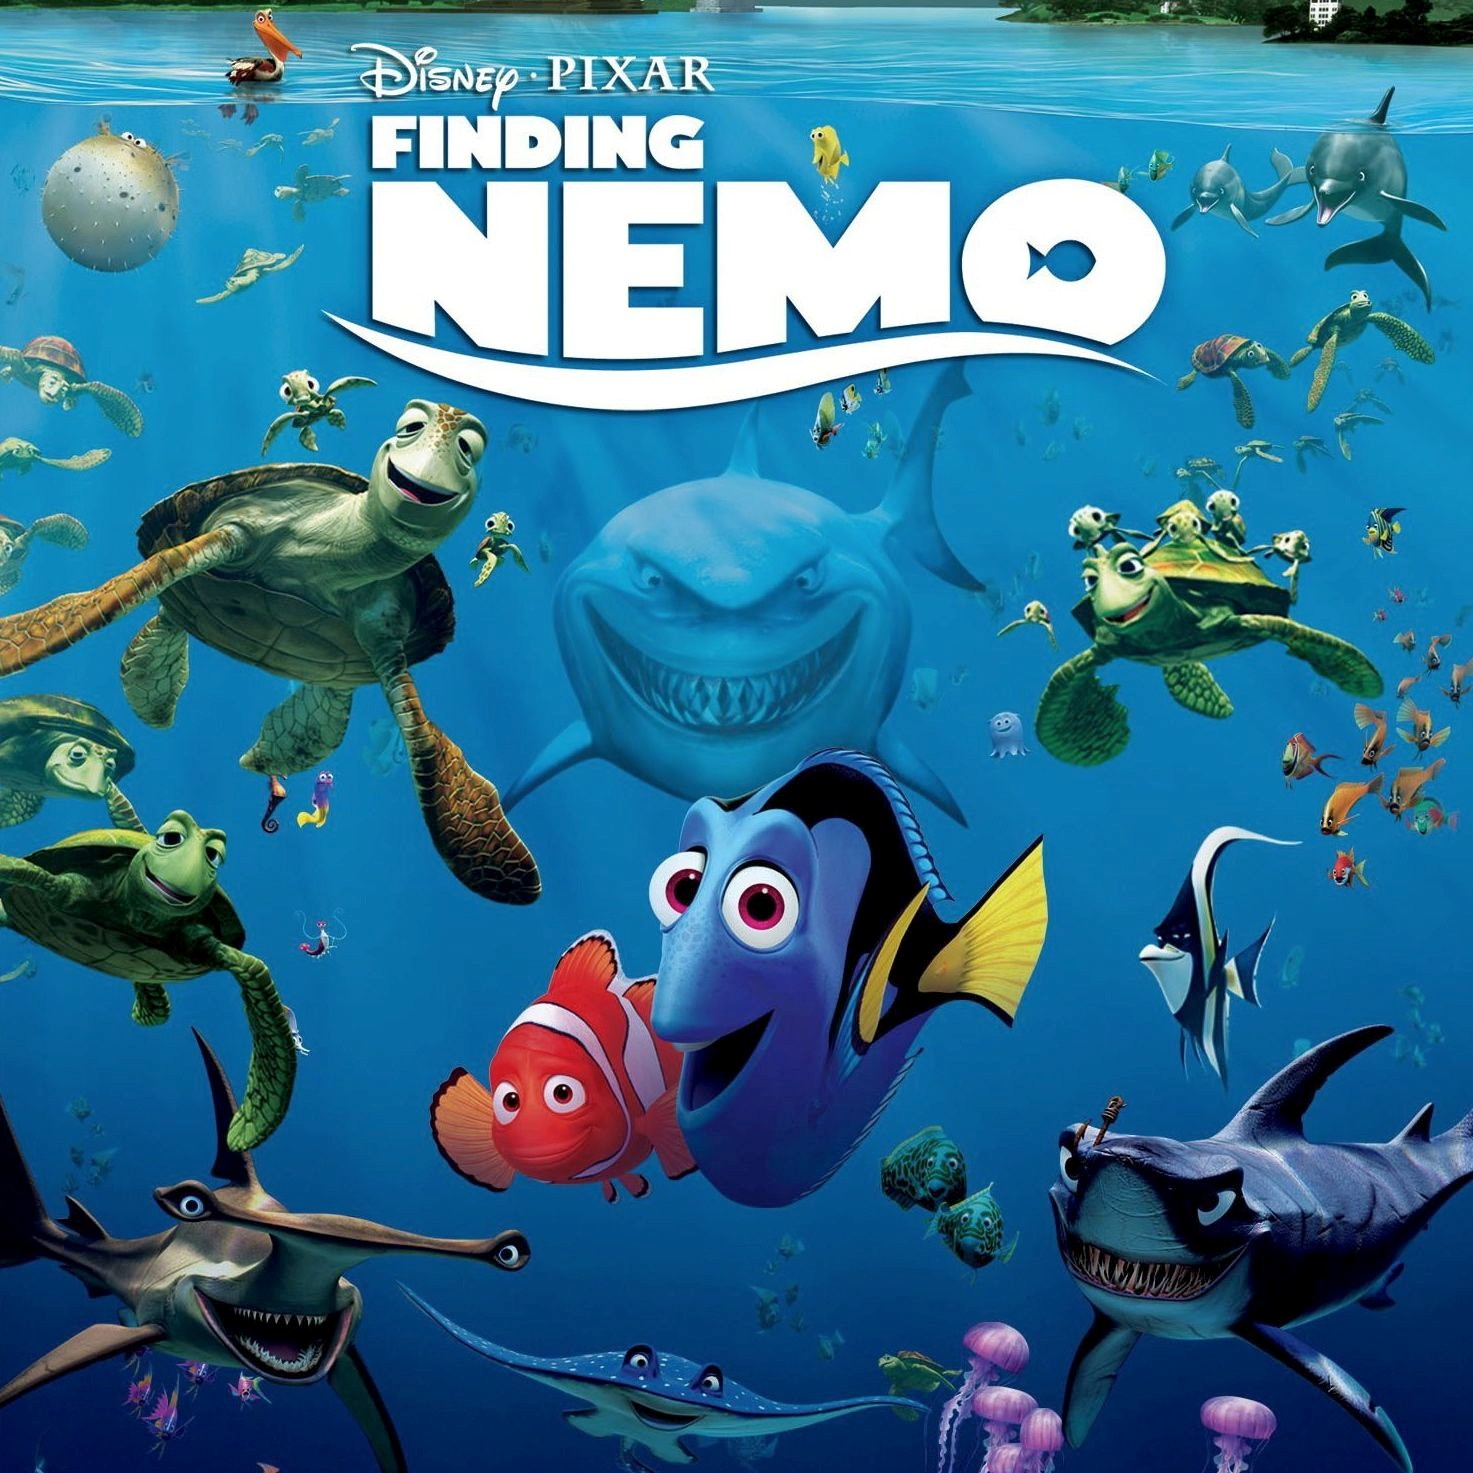 finding nemo essay top mysterious a disney secret messages of all  top mysterious a disney secret messages of all time if you finding nemo